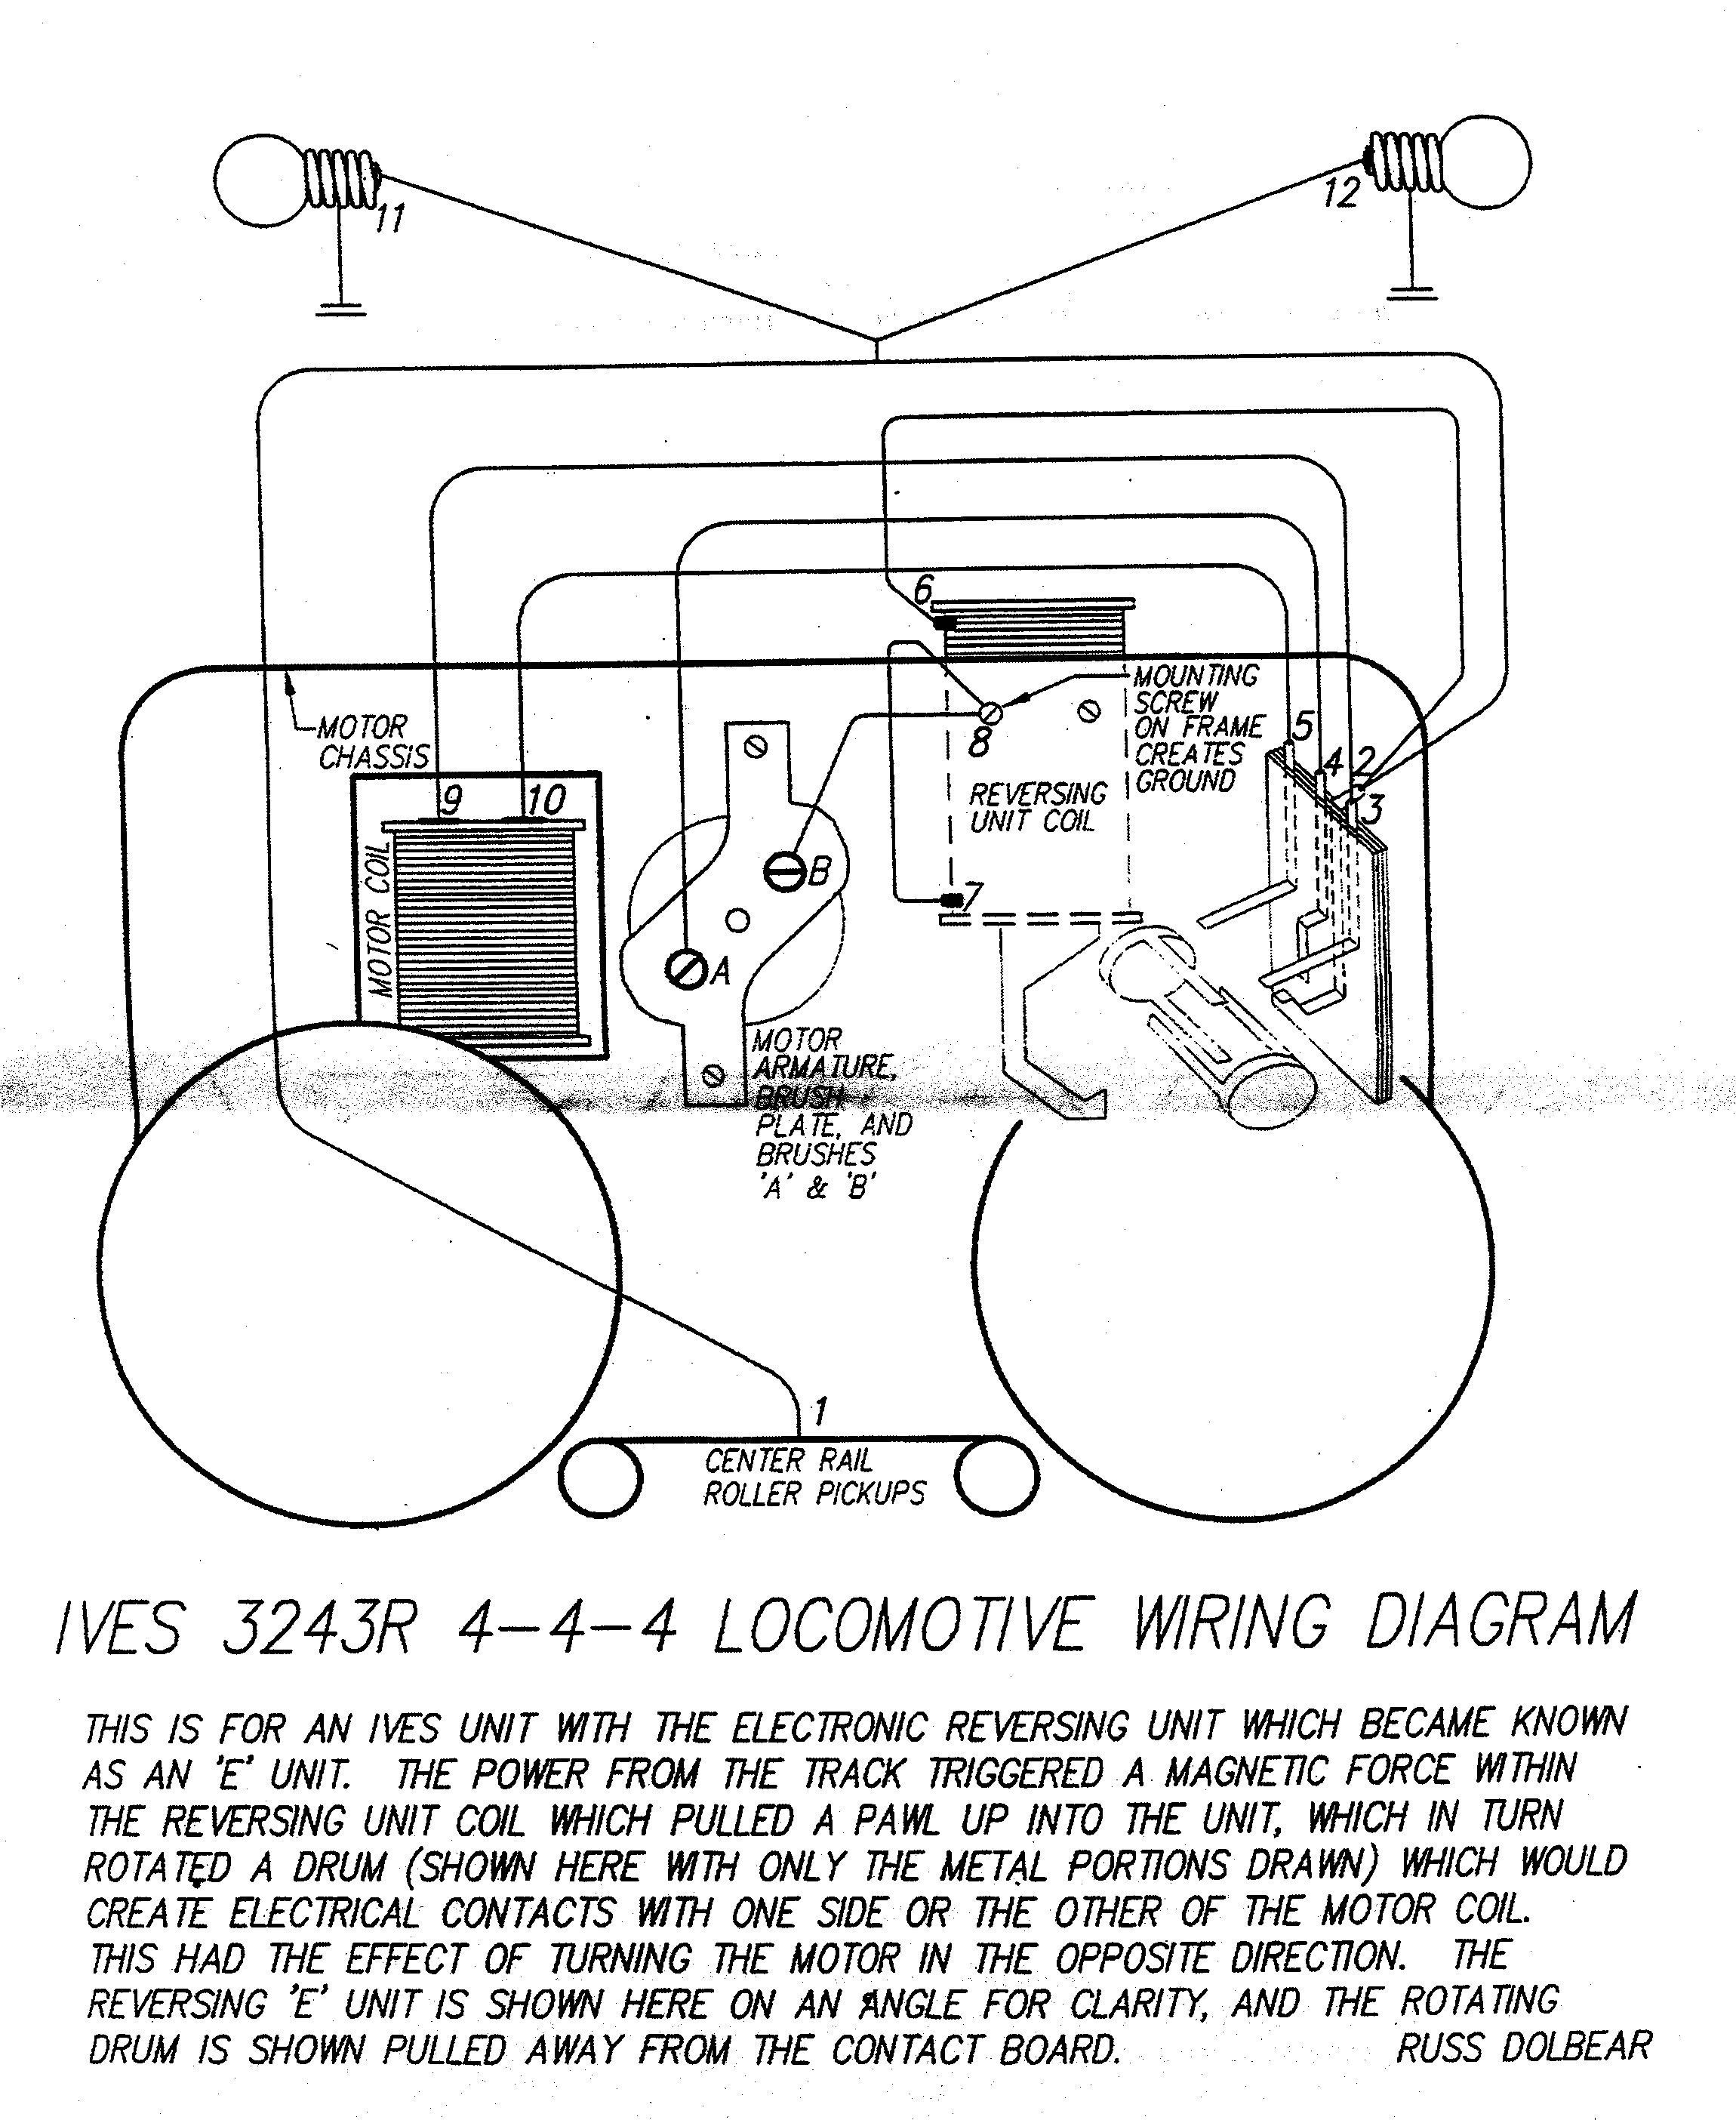 American Flyer Steam Engine Wiring Diagram Wiring Diagrams Of American Flyer Steam Engine Wiring Diagram